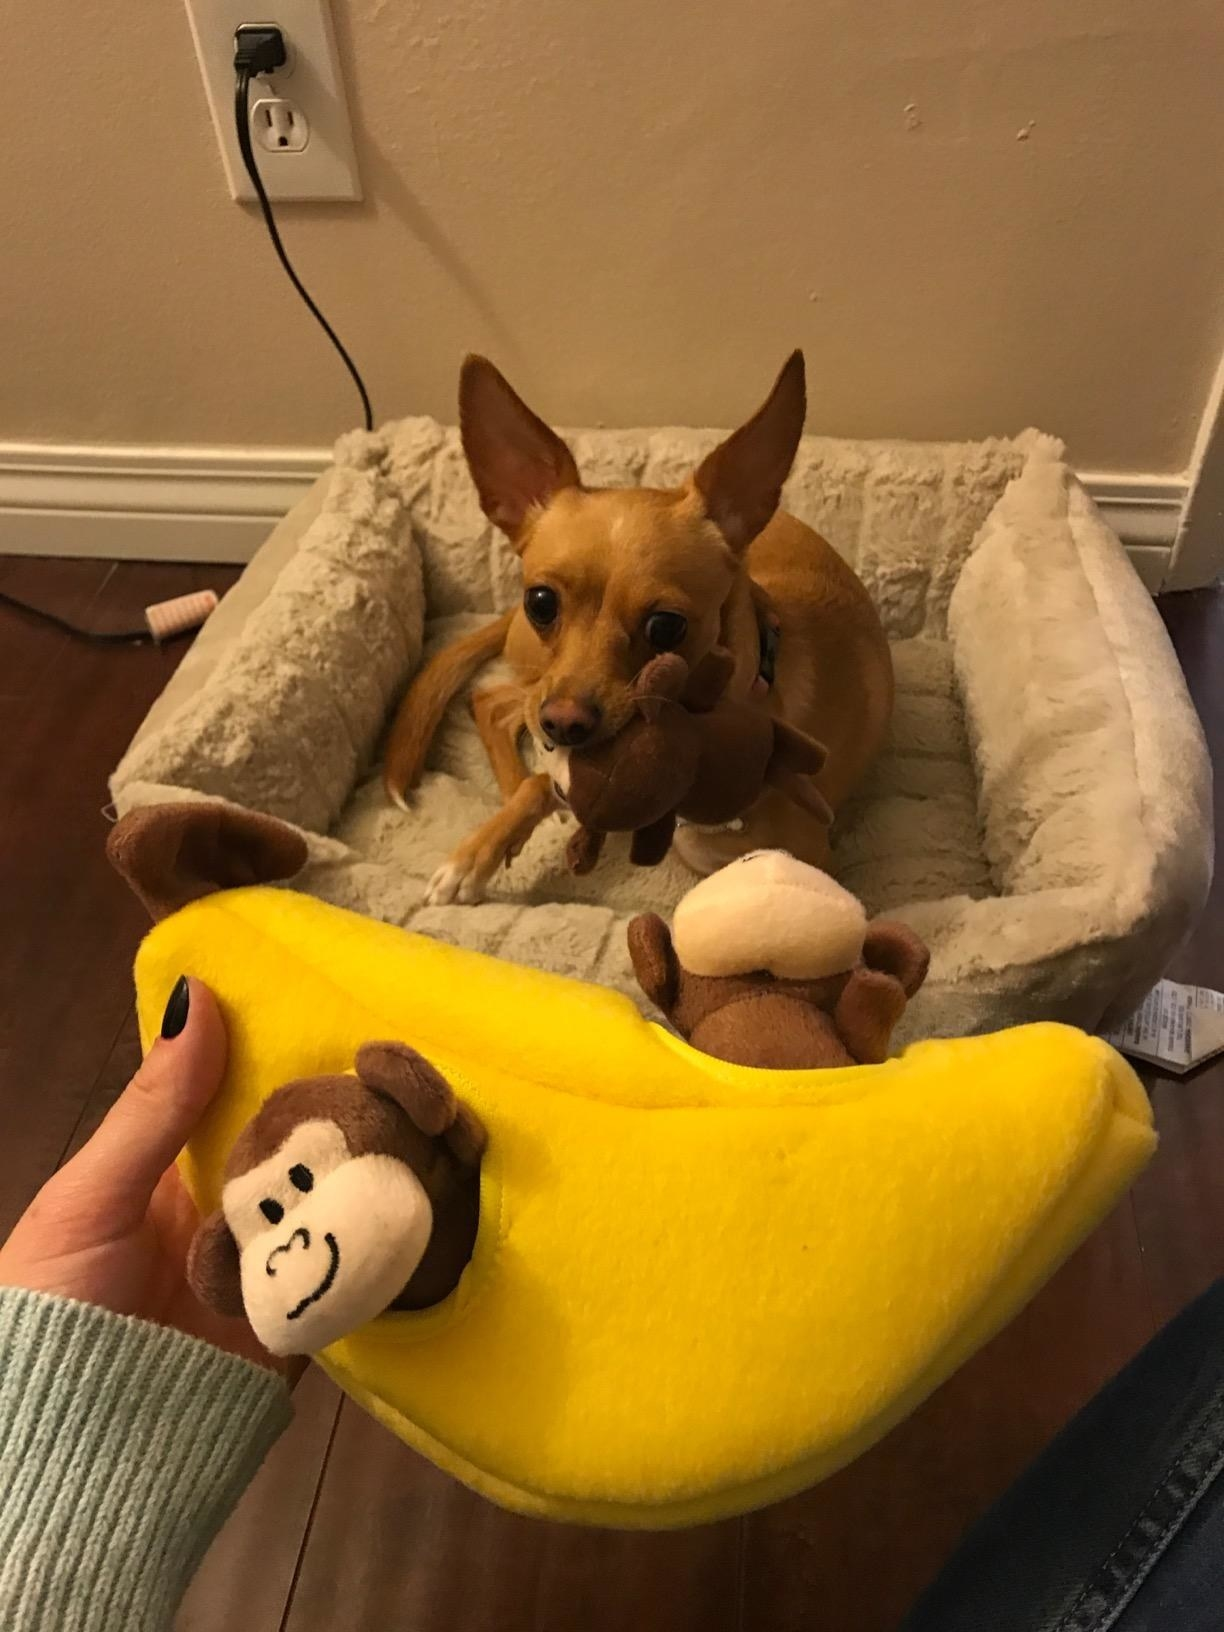 The toy in banana, which has several small, detachable monkeys sticking out of holes in the banana